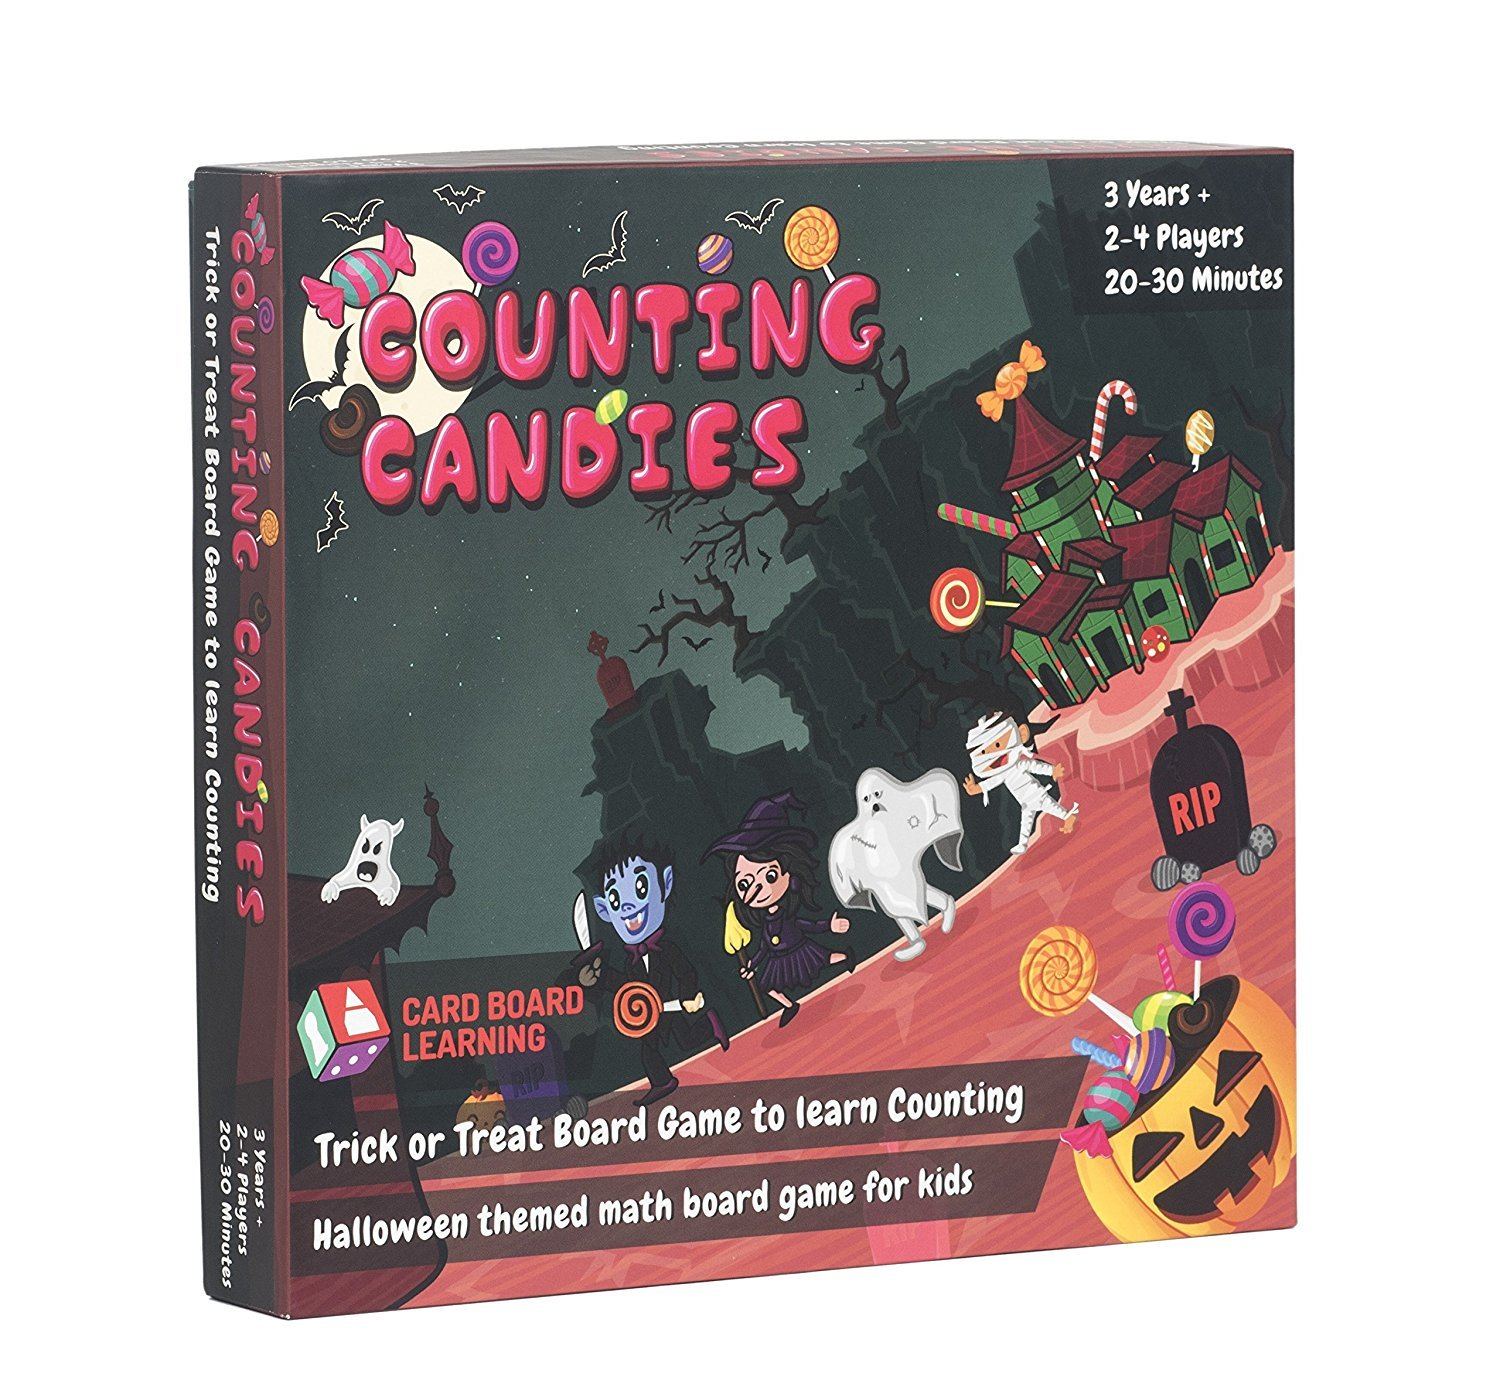 Counting Board Game for Kids - Counting Candies STEM Gift for Kids 4 Years and Above.